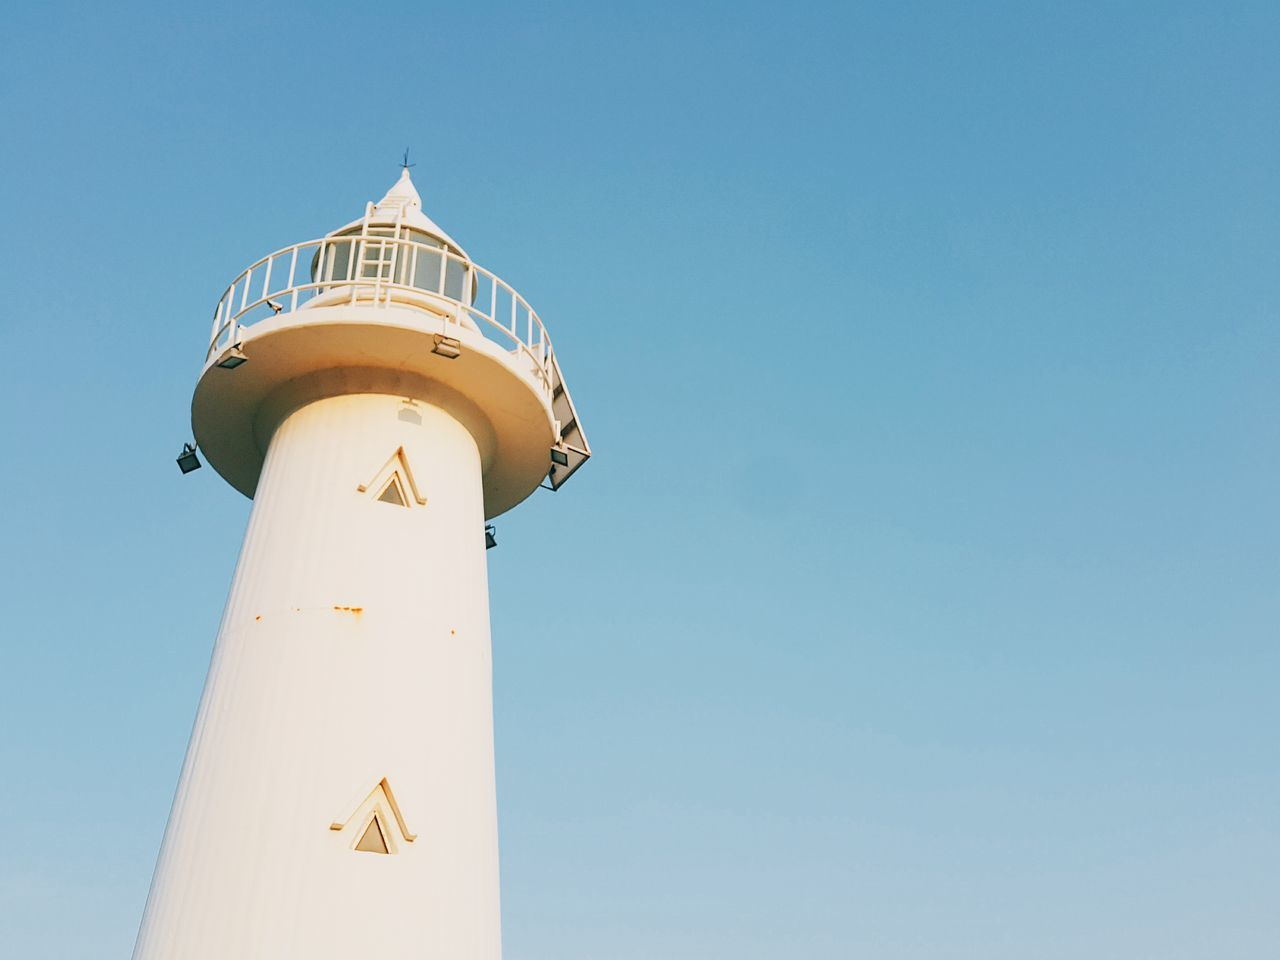 Lighthouse White Sea And Sky Lighthouse And Sky Security Protection Sky Tower Safety Low Angle View Clear Sky Day Direction Blue No People Outdoors Architecture Building Exterior Clock Face